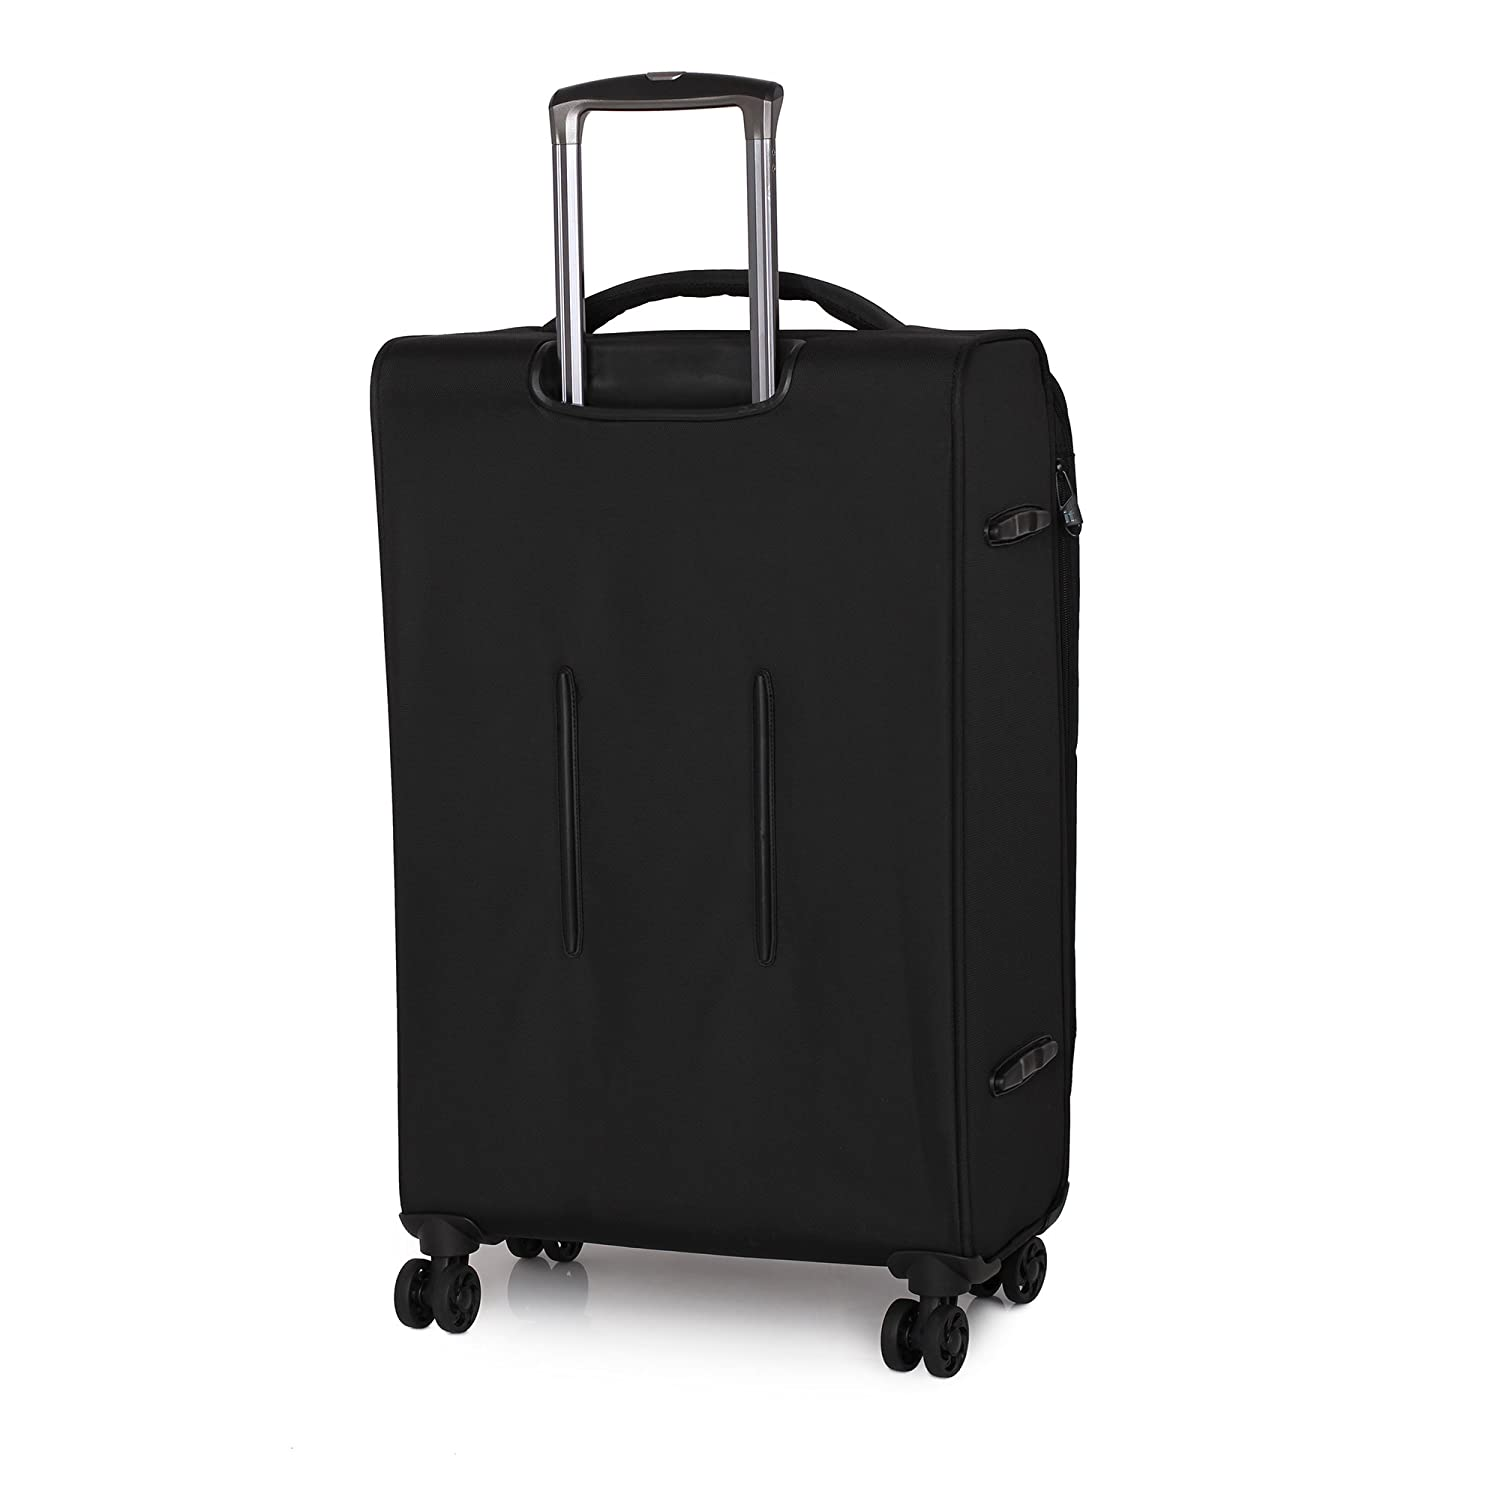 Black IT Luggage Parent Code 12-185708-UEB3N-S001 it luggage Megalite-Vitality-8 Wheel Semi Expander Lightweight 3 Piece Set